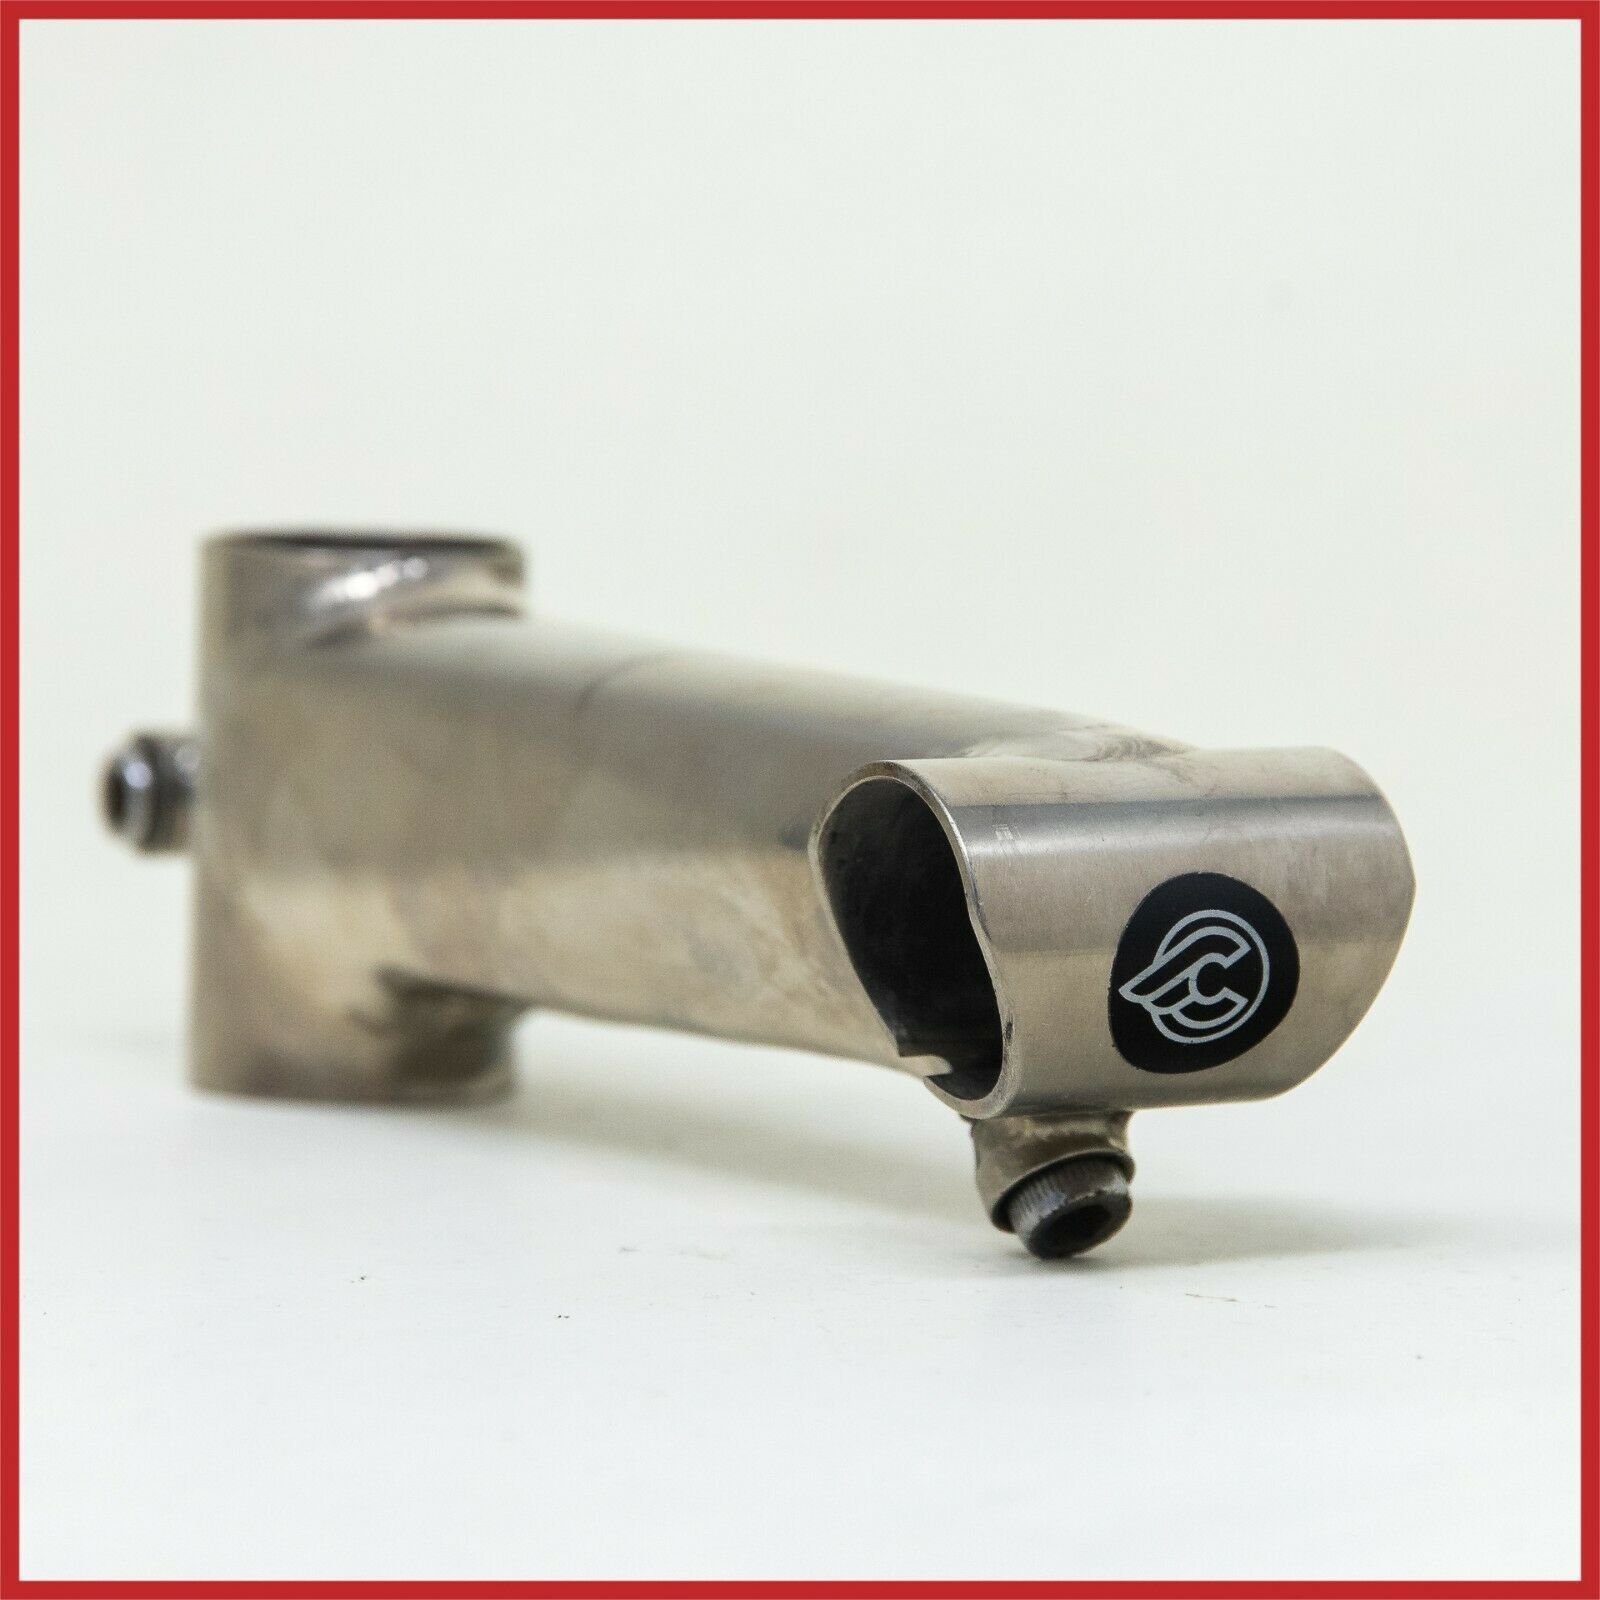 NOS CINELLI GRAMMO MTB 135mm TITANIUM 118 STEM 90s VINTAGE AHEAD THREADLESS